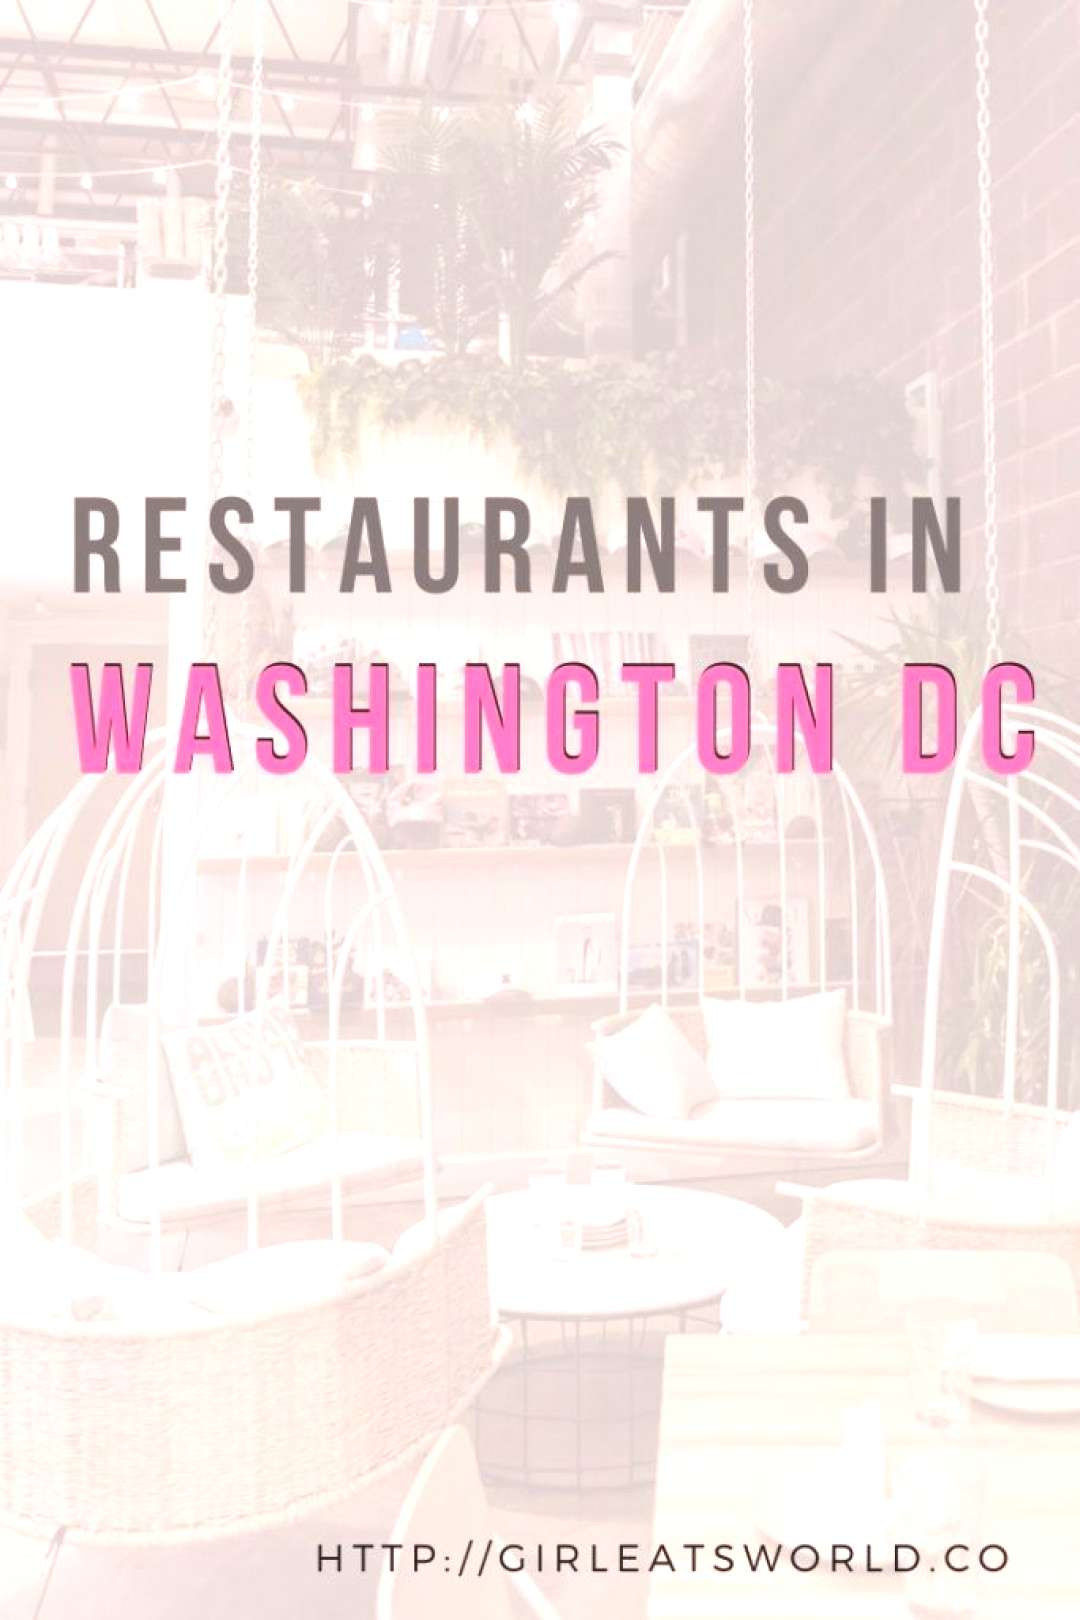 19 Amazing Restaurants to Check Out in Washington DC,  19 Amazing Restaurants to Check Out in Washi